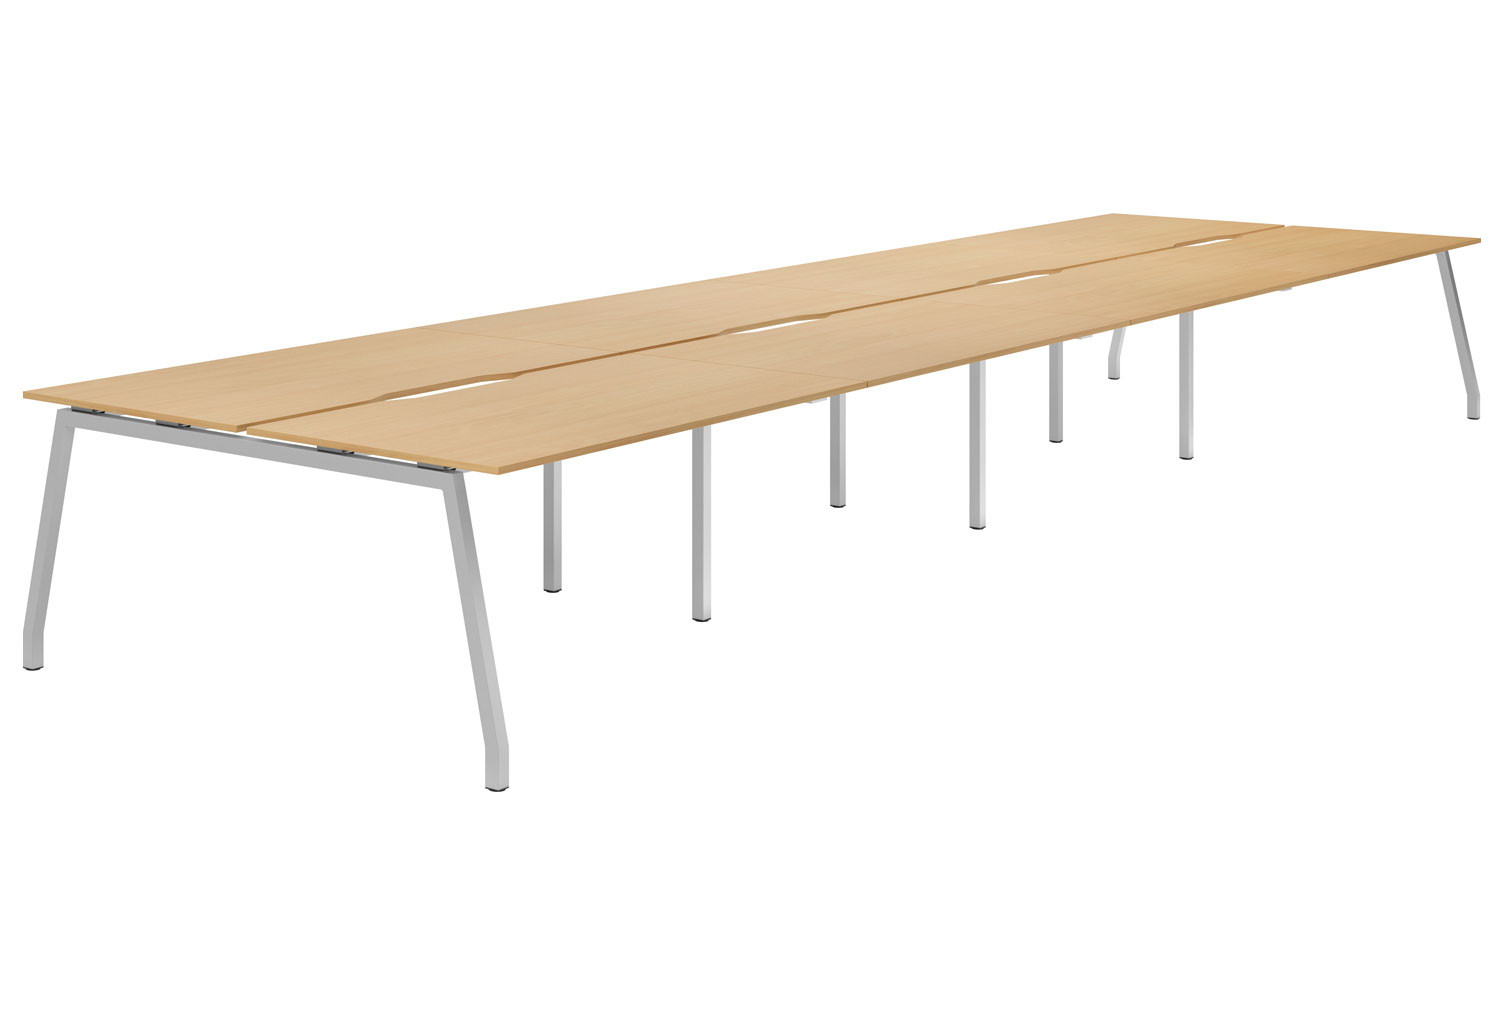 Lozano A-Frame 8 Person Back To Back Bench Desk (Beech)